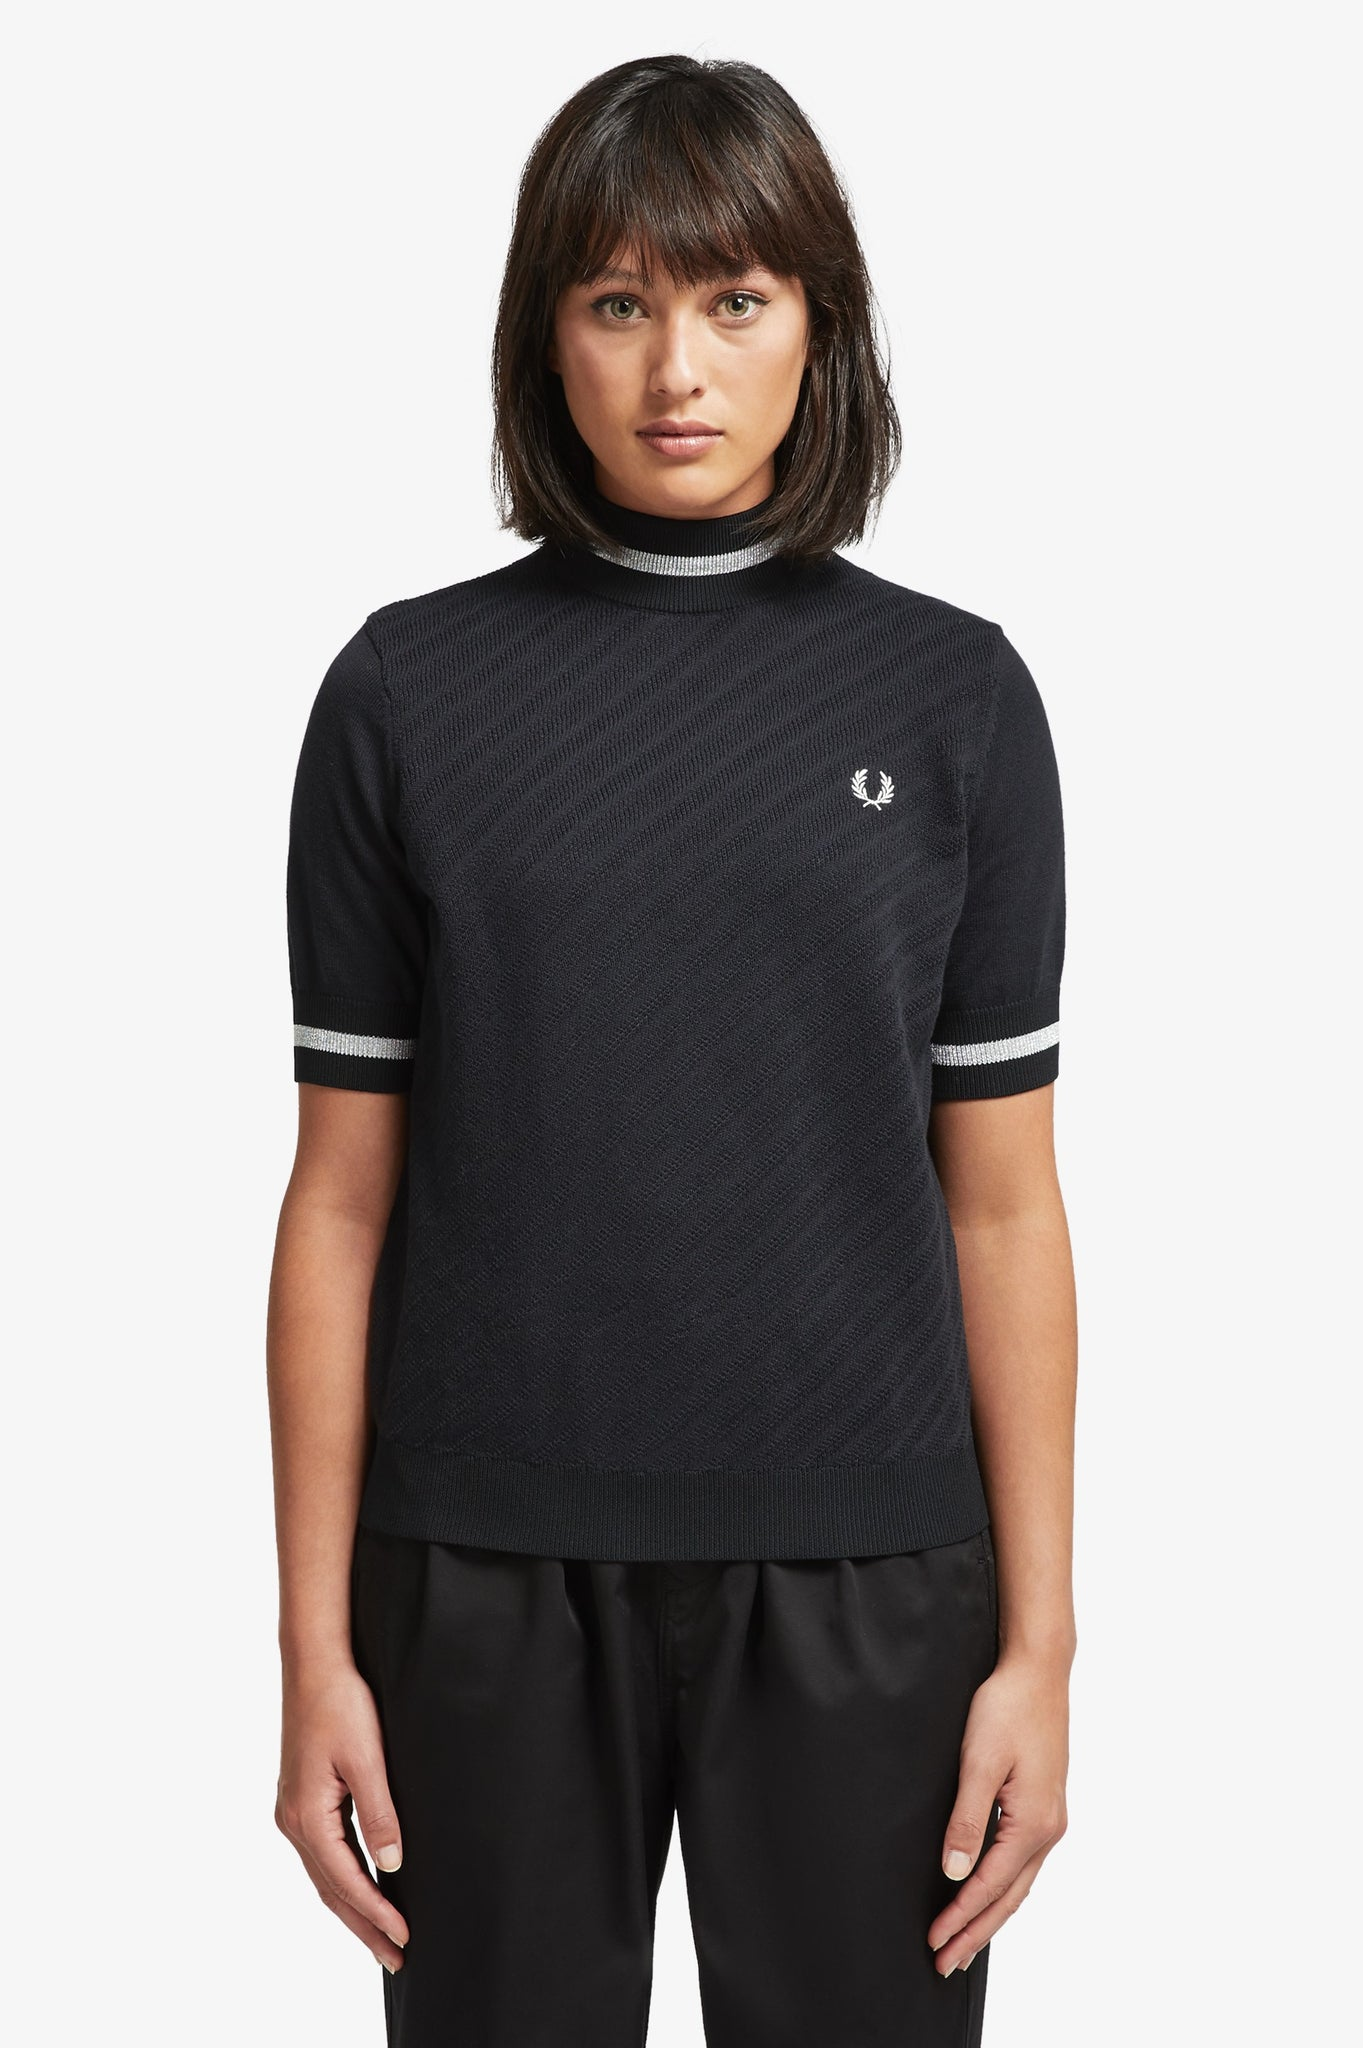 Fred Perry Ladies Black Textured Turtle Neck Knit